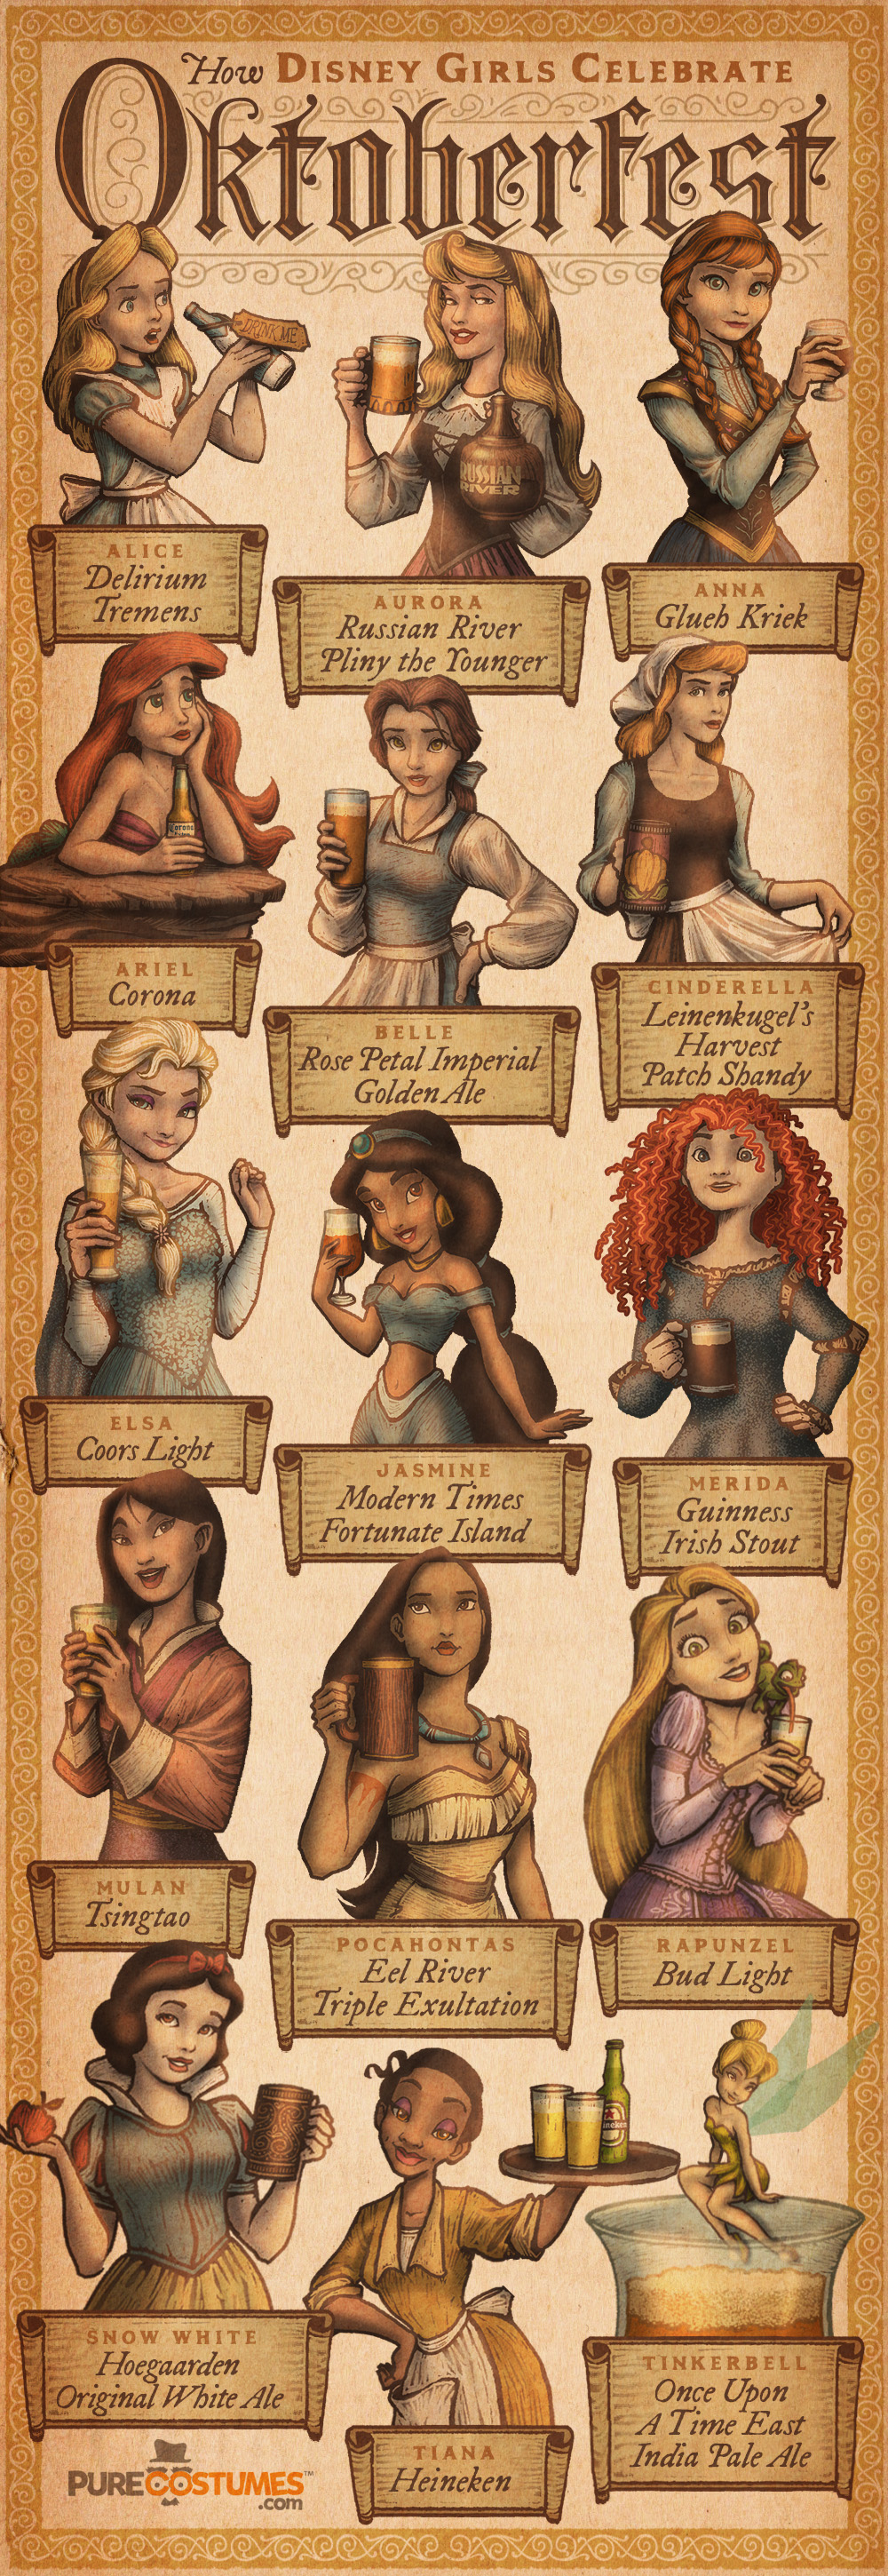 how-the-disney-princesses-celebrate-octoberfest-by-the-brews-they-drink1